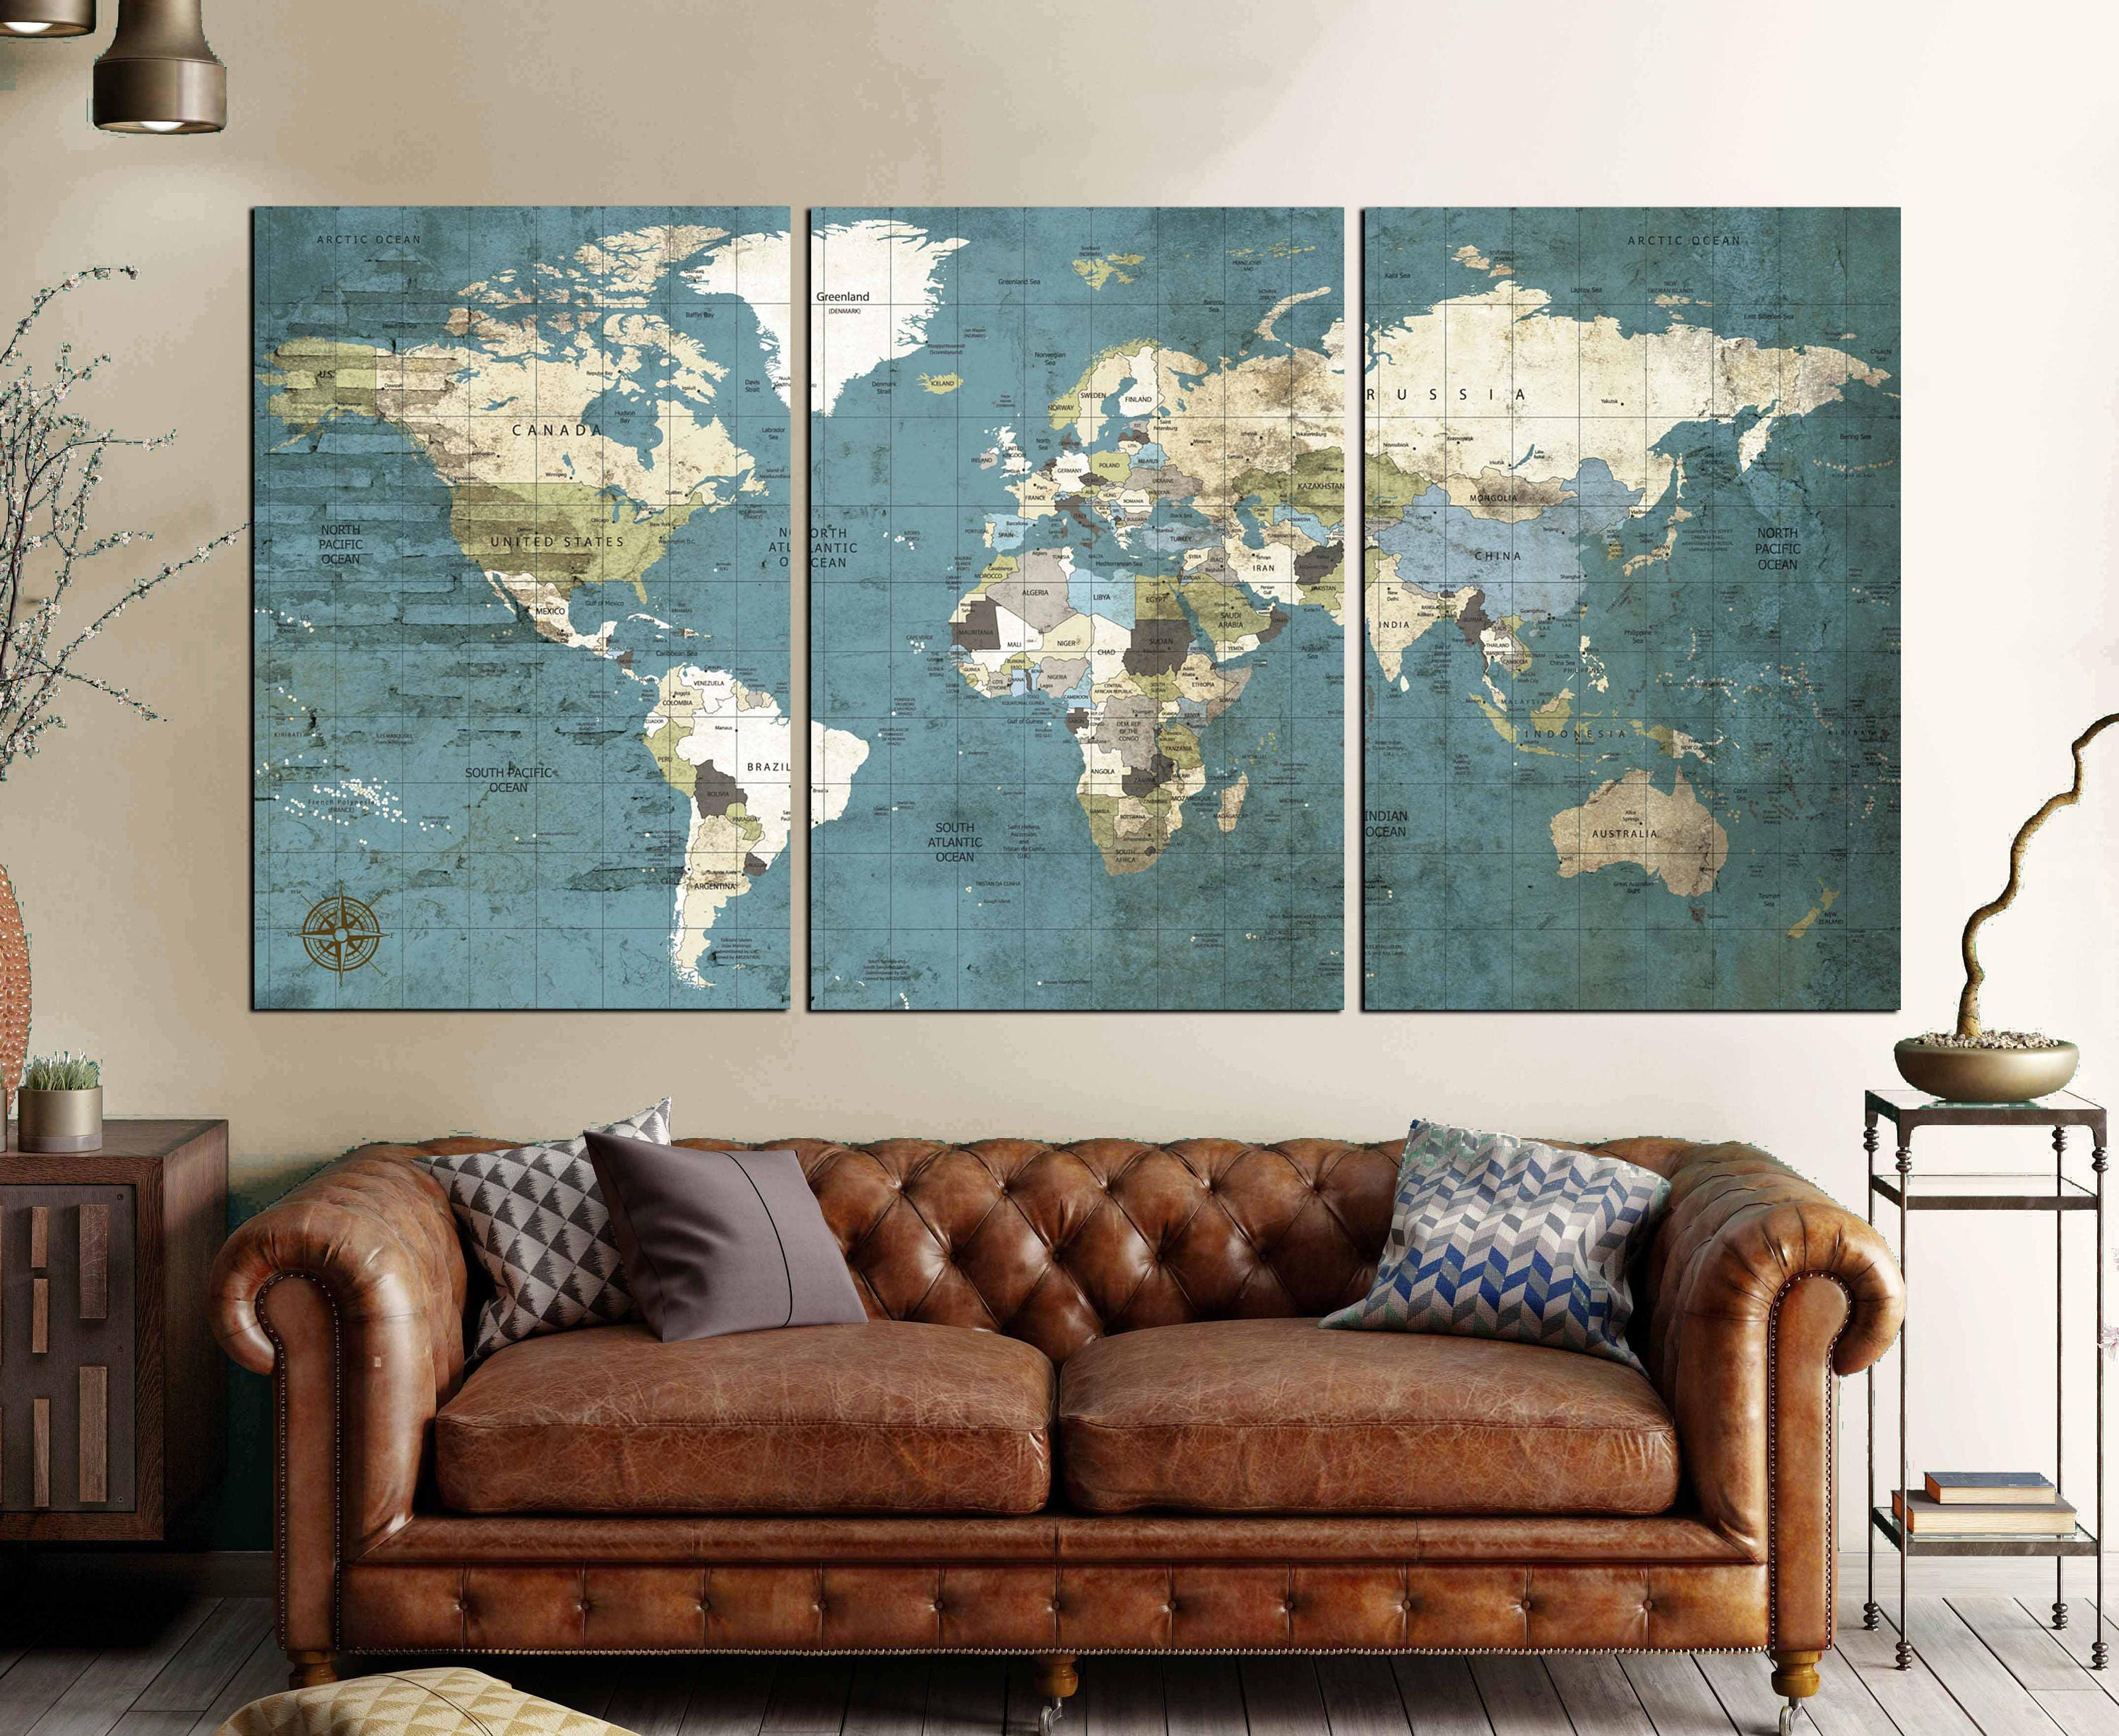 Large world map vintage canvas printworld map wall artworld map large world map vintage canvas printworld map wall artworld map push pin world travel mapworld map vintageworld map canvaspolitical map gumiabroncs Image collections